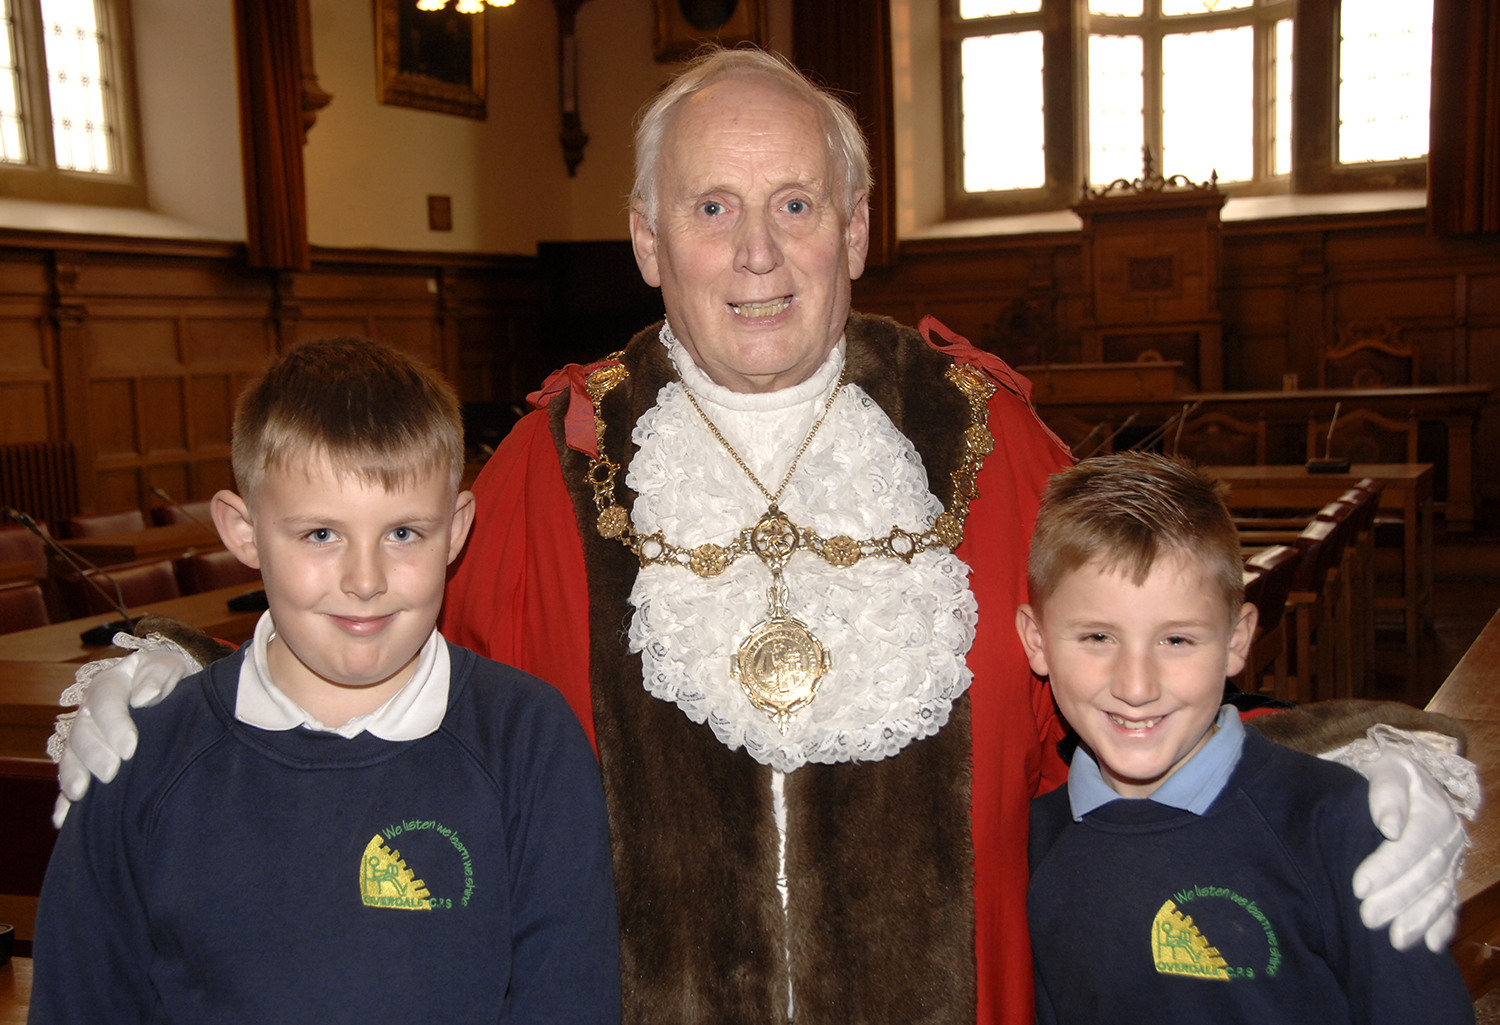 Jack Mealor, left, with his pal Charlie Wright and the mayor in the town hall (to order photos ring 353597)